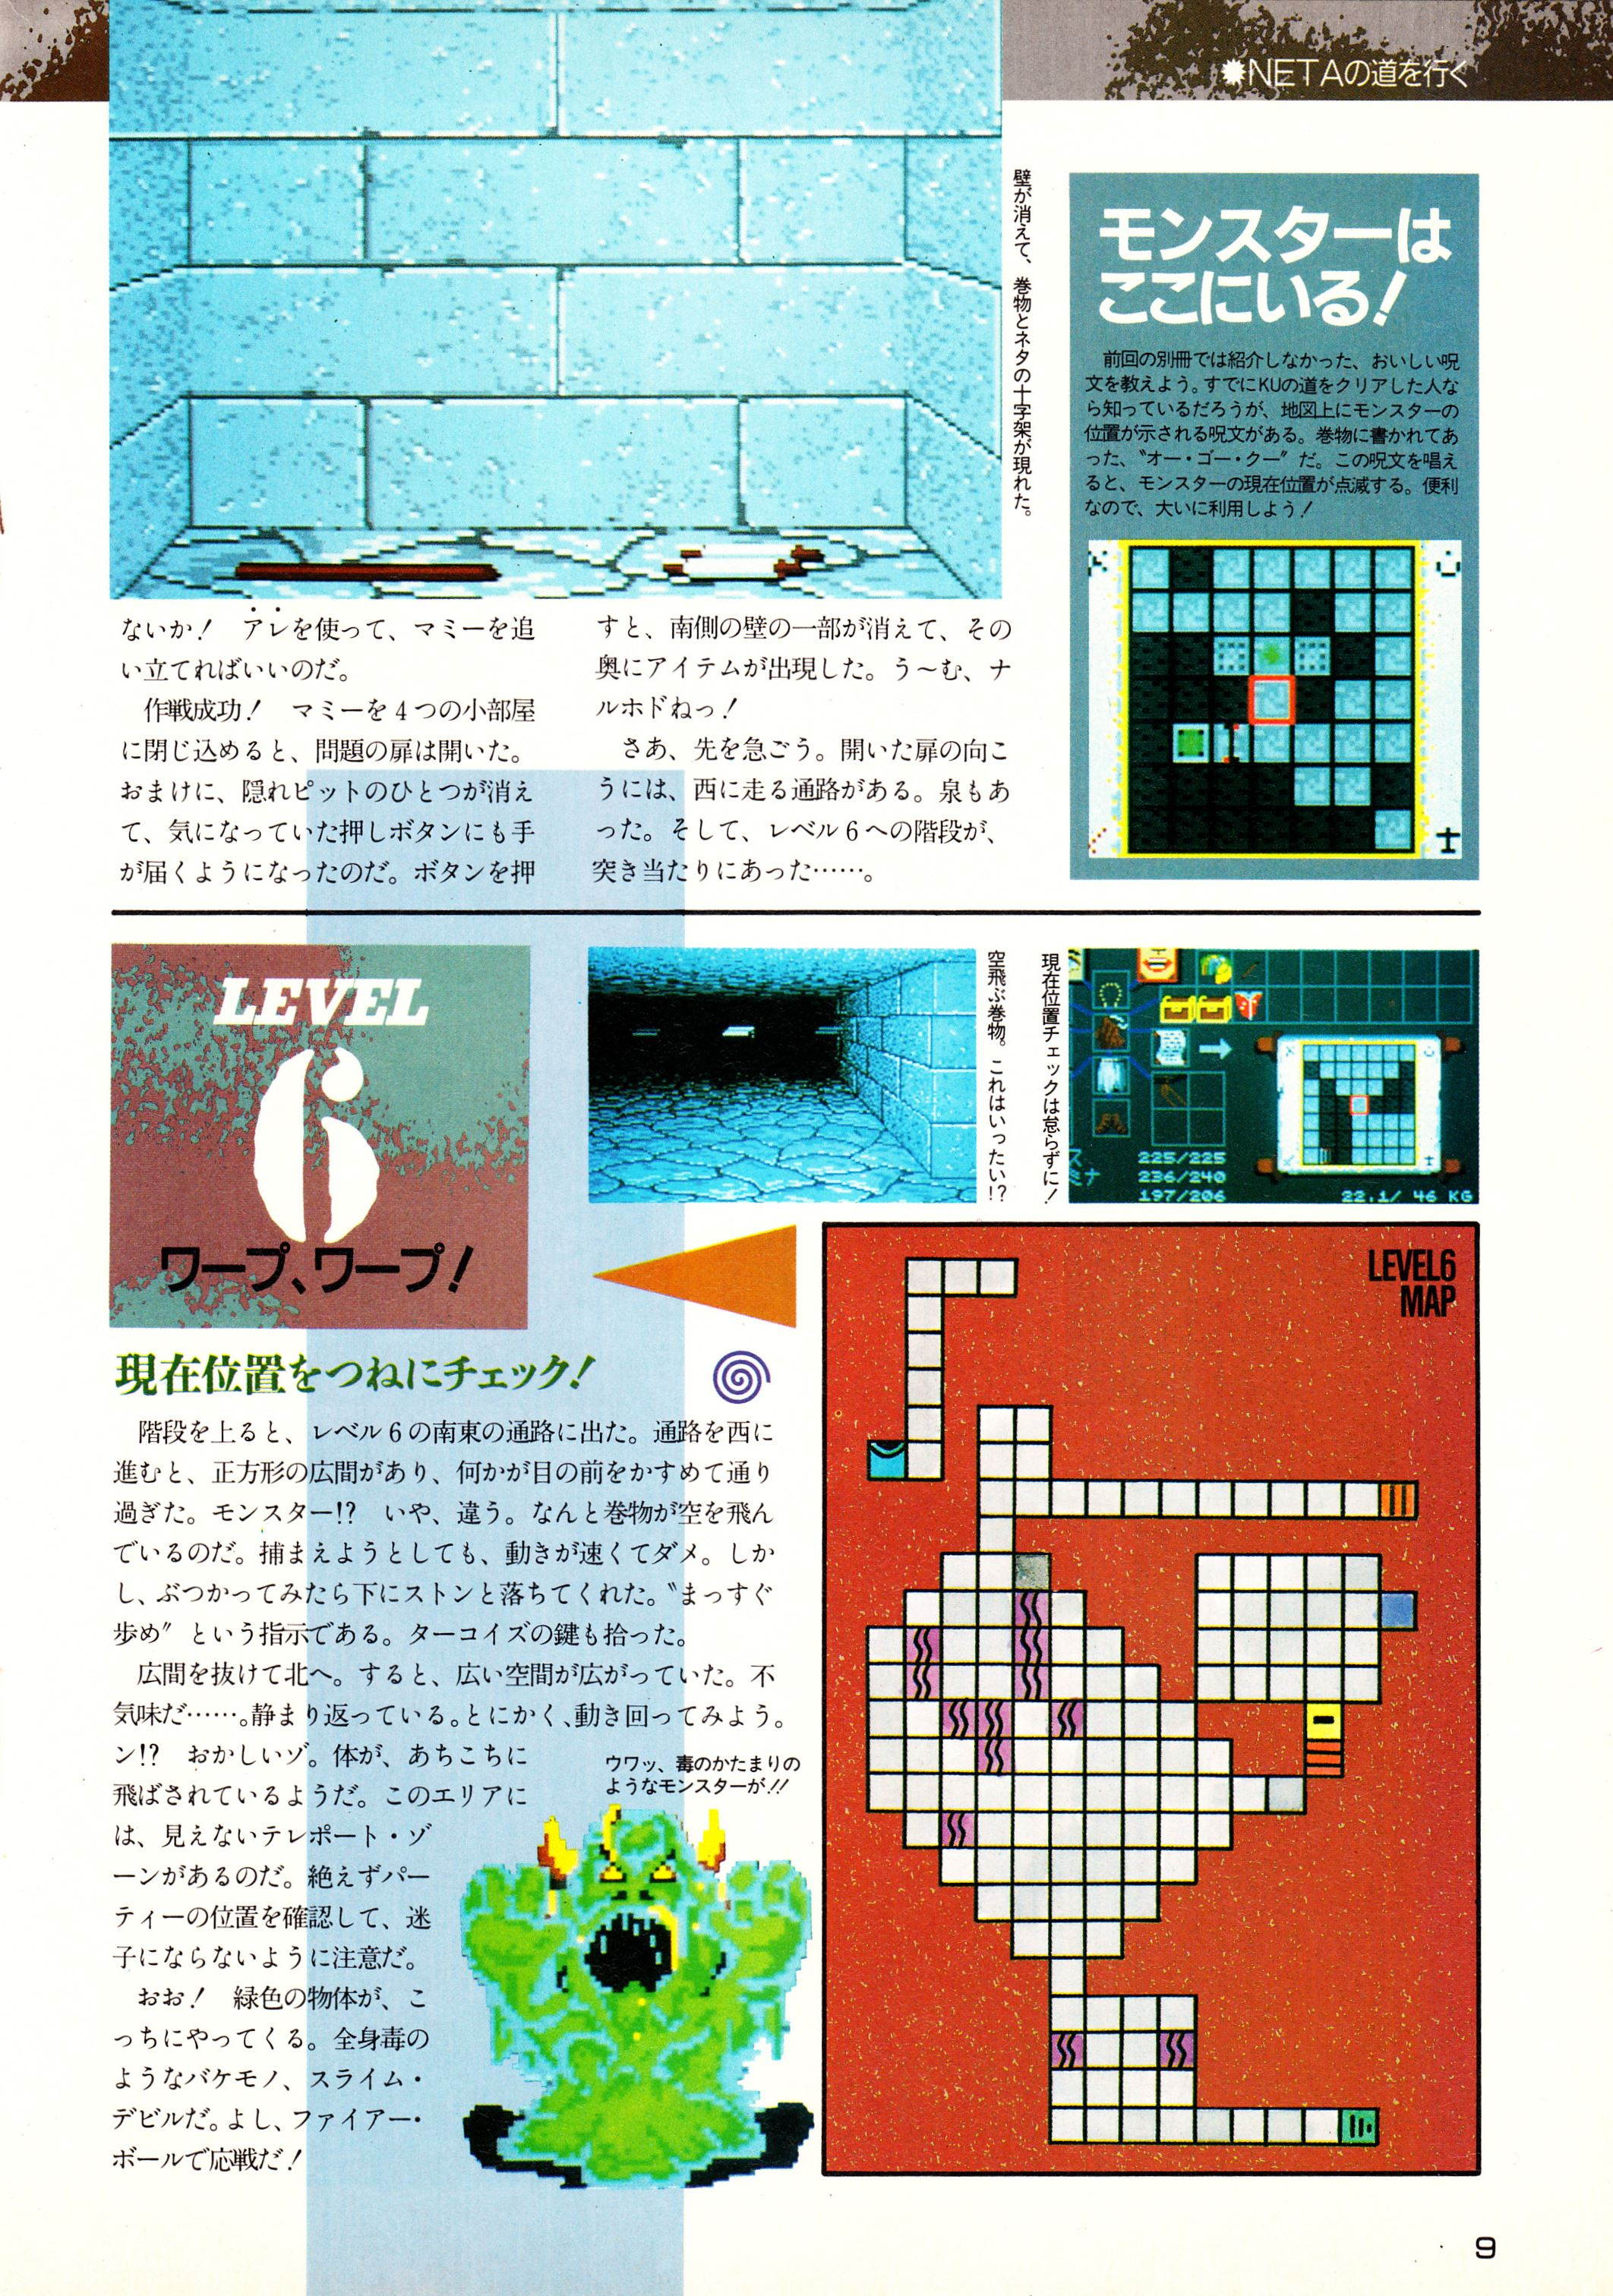 Supplement - Chaos Strikes Back Companion Guide II Guide published in Japanese magazine 'Popcom', Vol 9 No 3 01 March 1991, Page 11